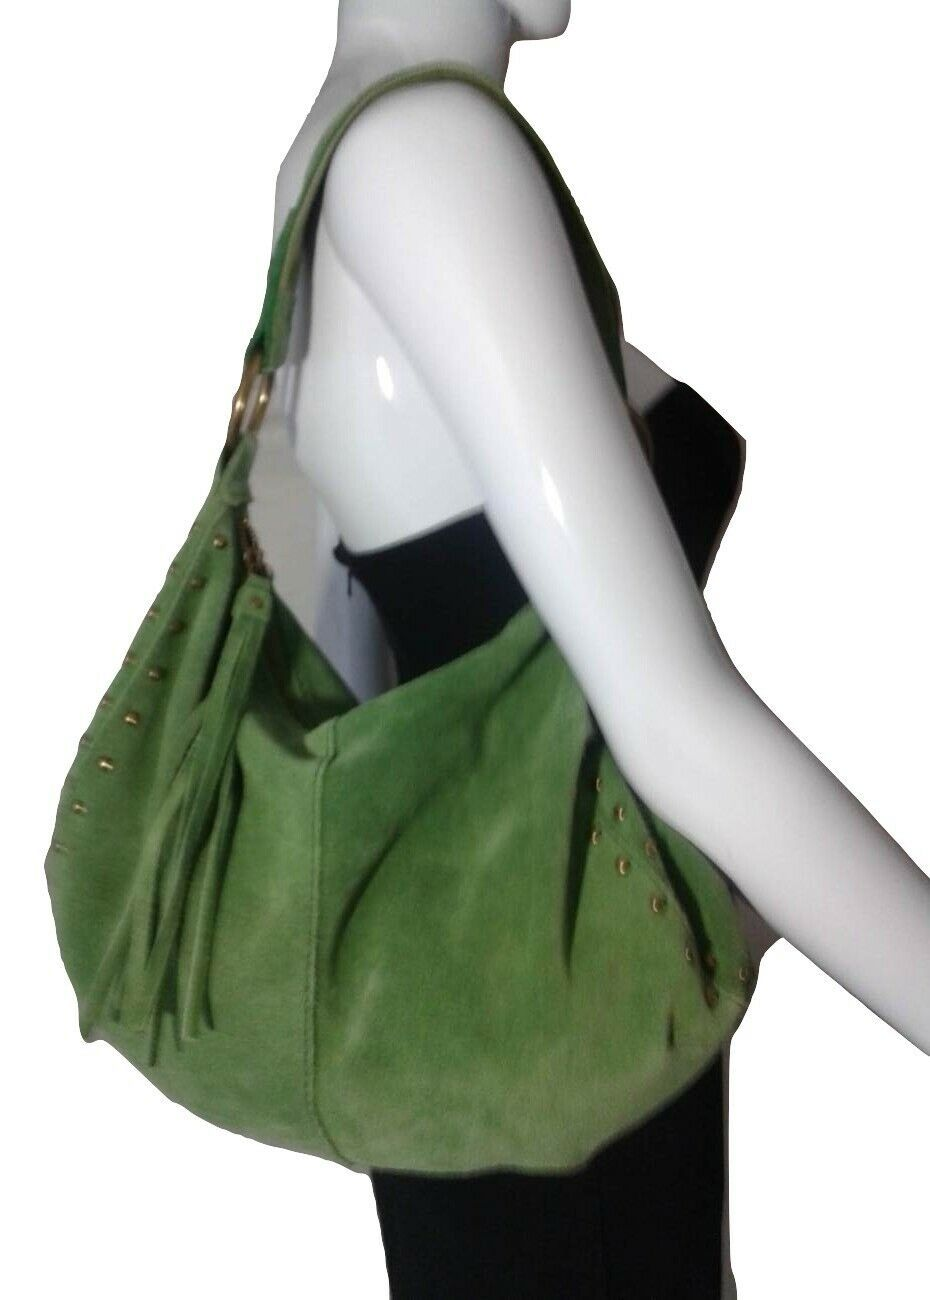 Details about LUCKY BRAND Purse Green Suede